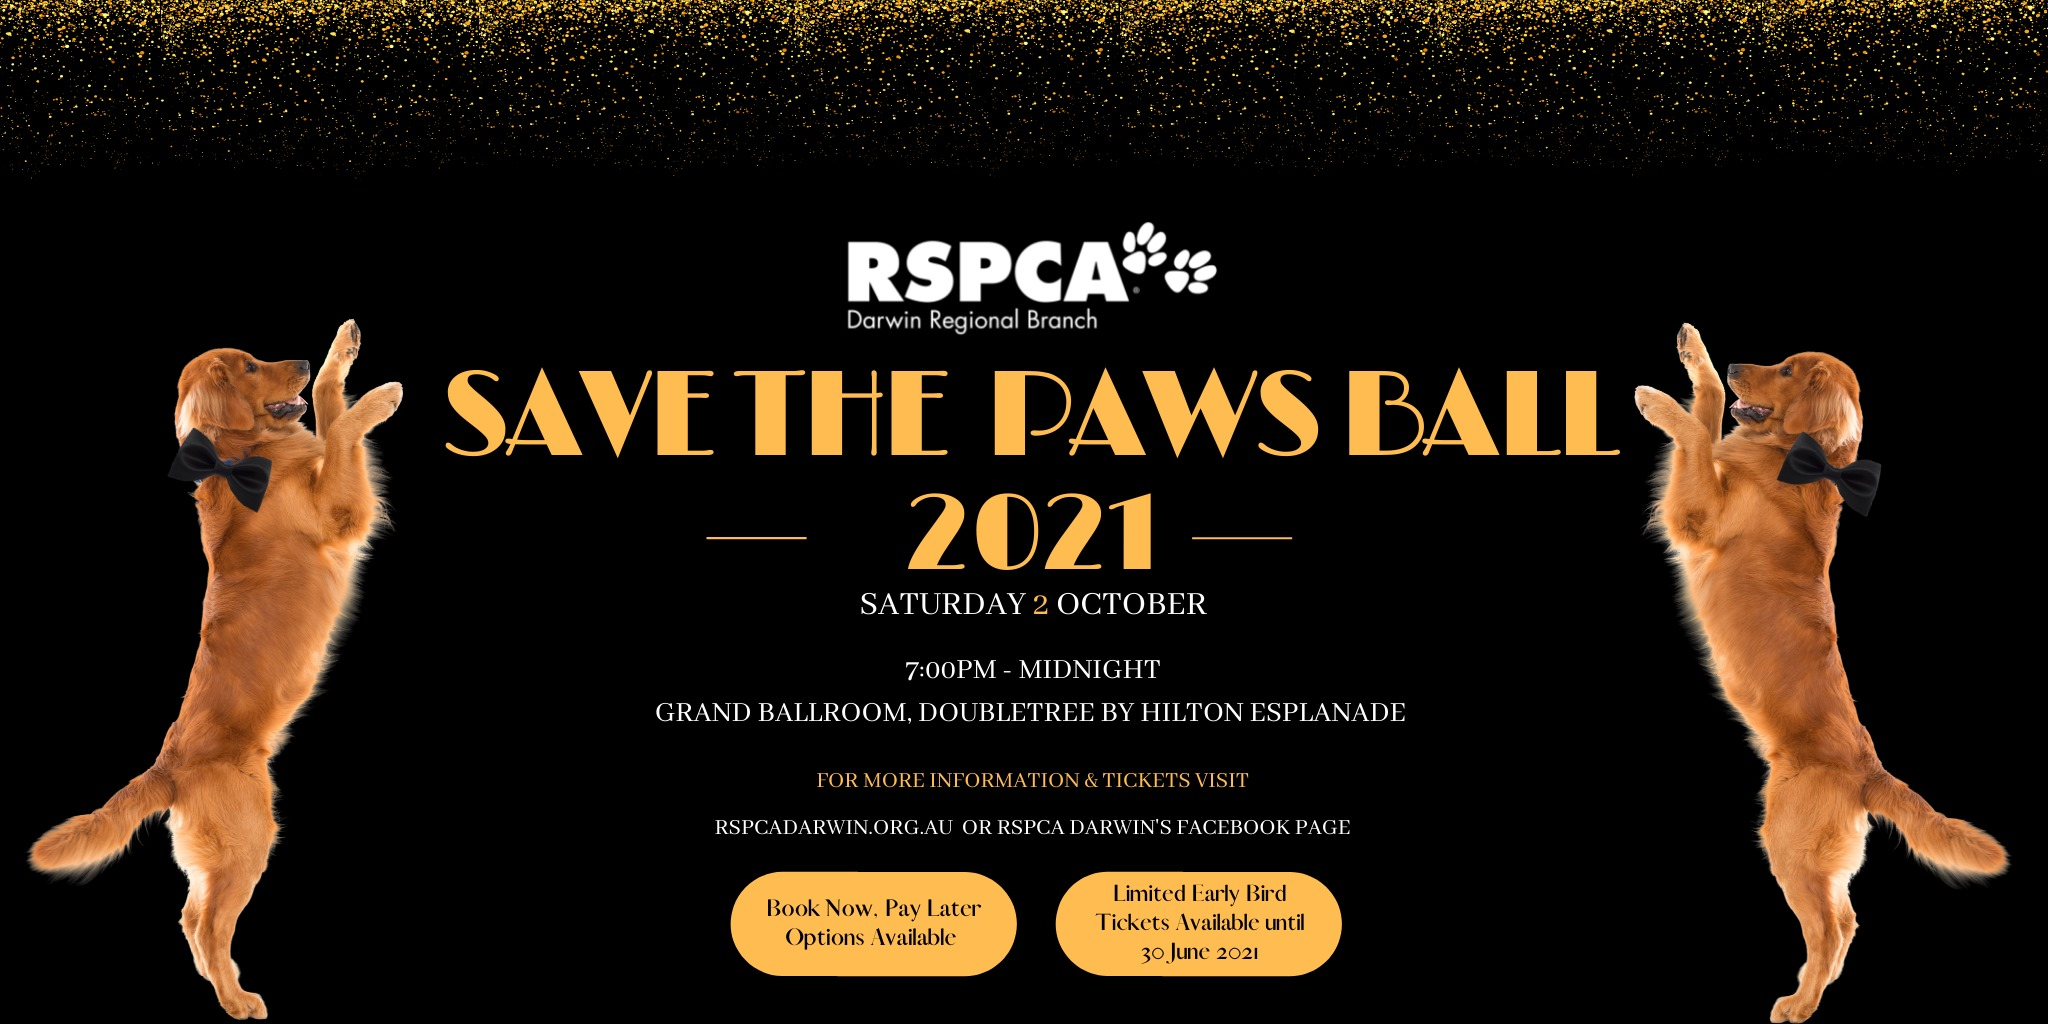 Save the Paws Ball